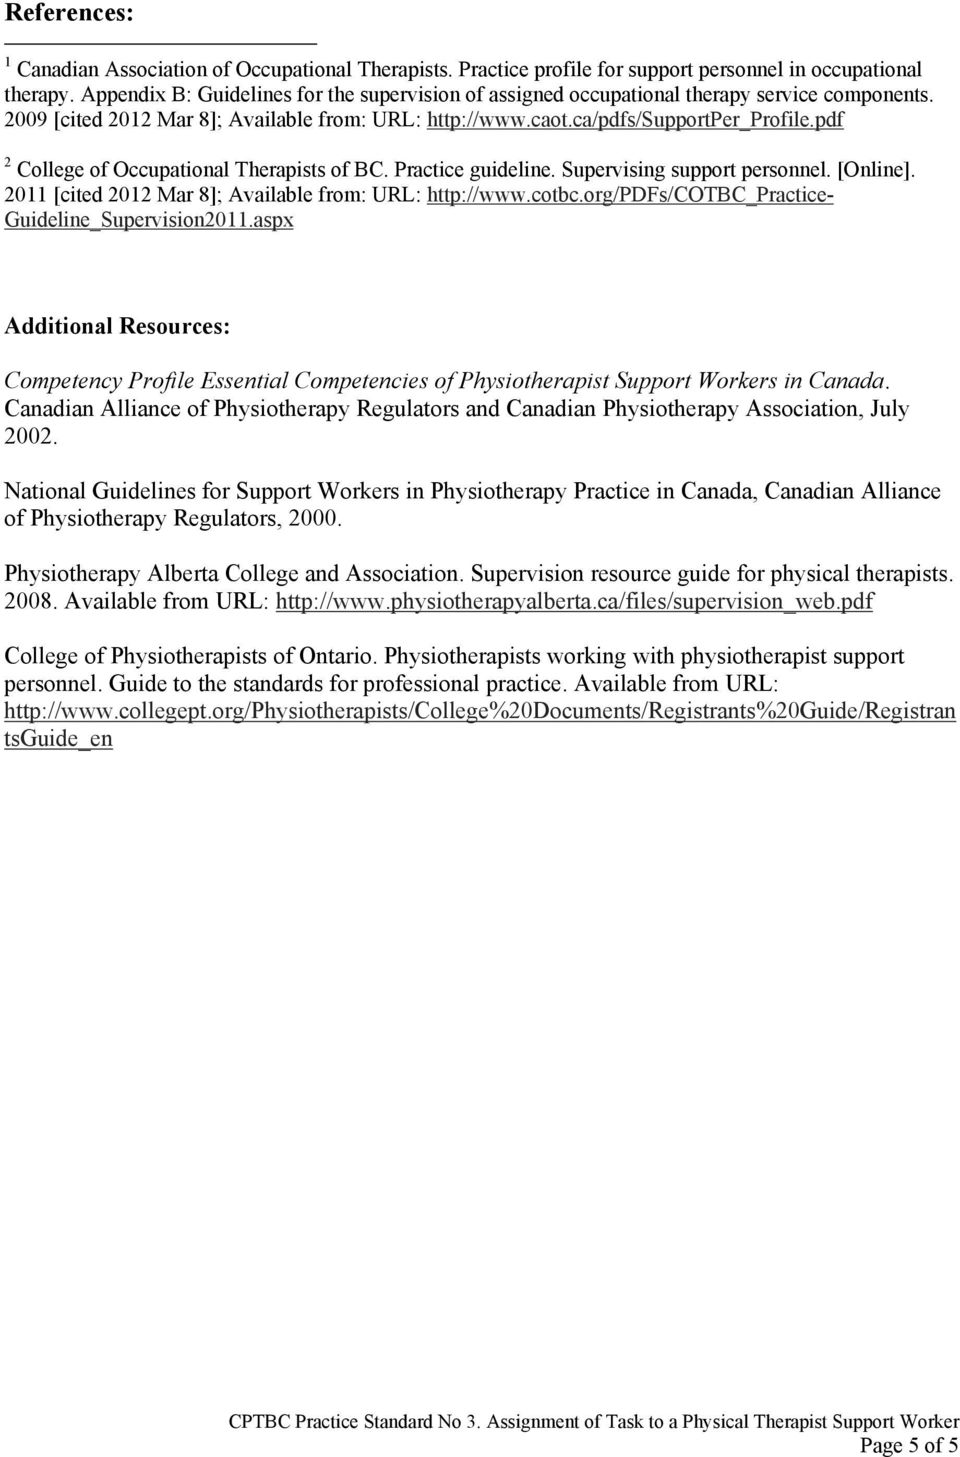 pdf 2 College of Occupational Therapists of BC. Practice guideline. Supervising support personnel. [Online]. 2011 [cited 2012 Mar 8]; Available from: URL: http://www.cotbc.